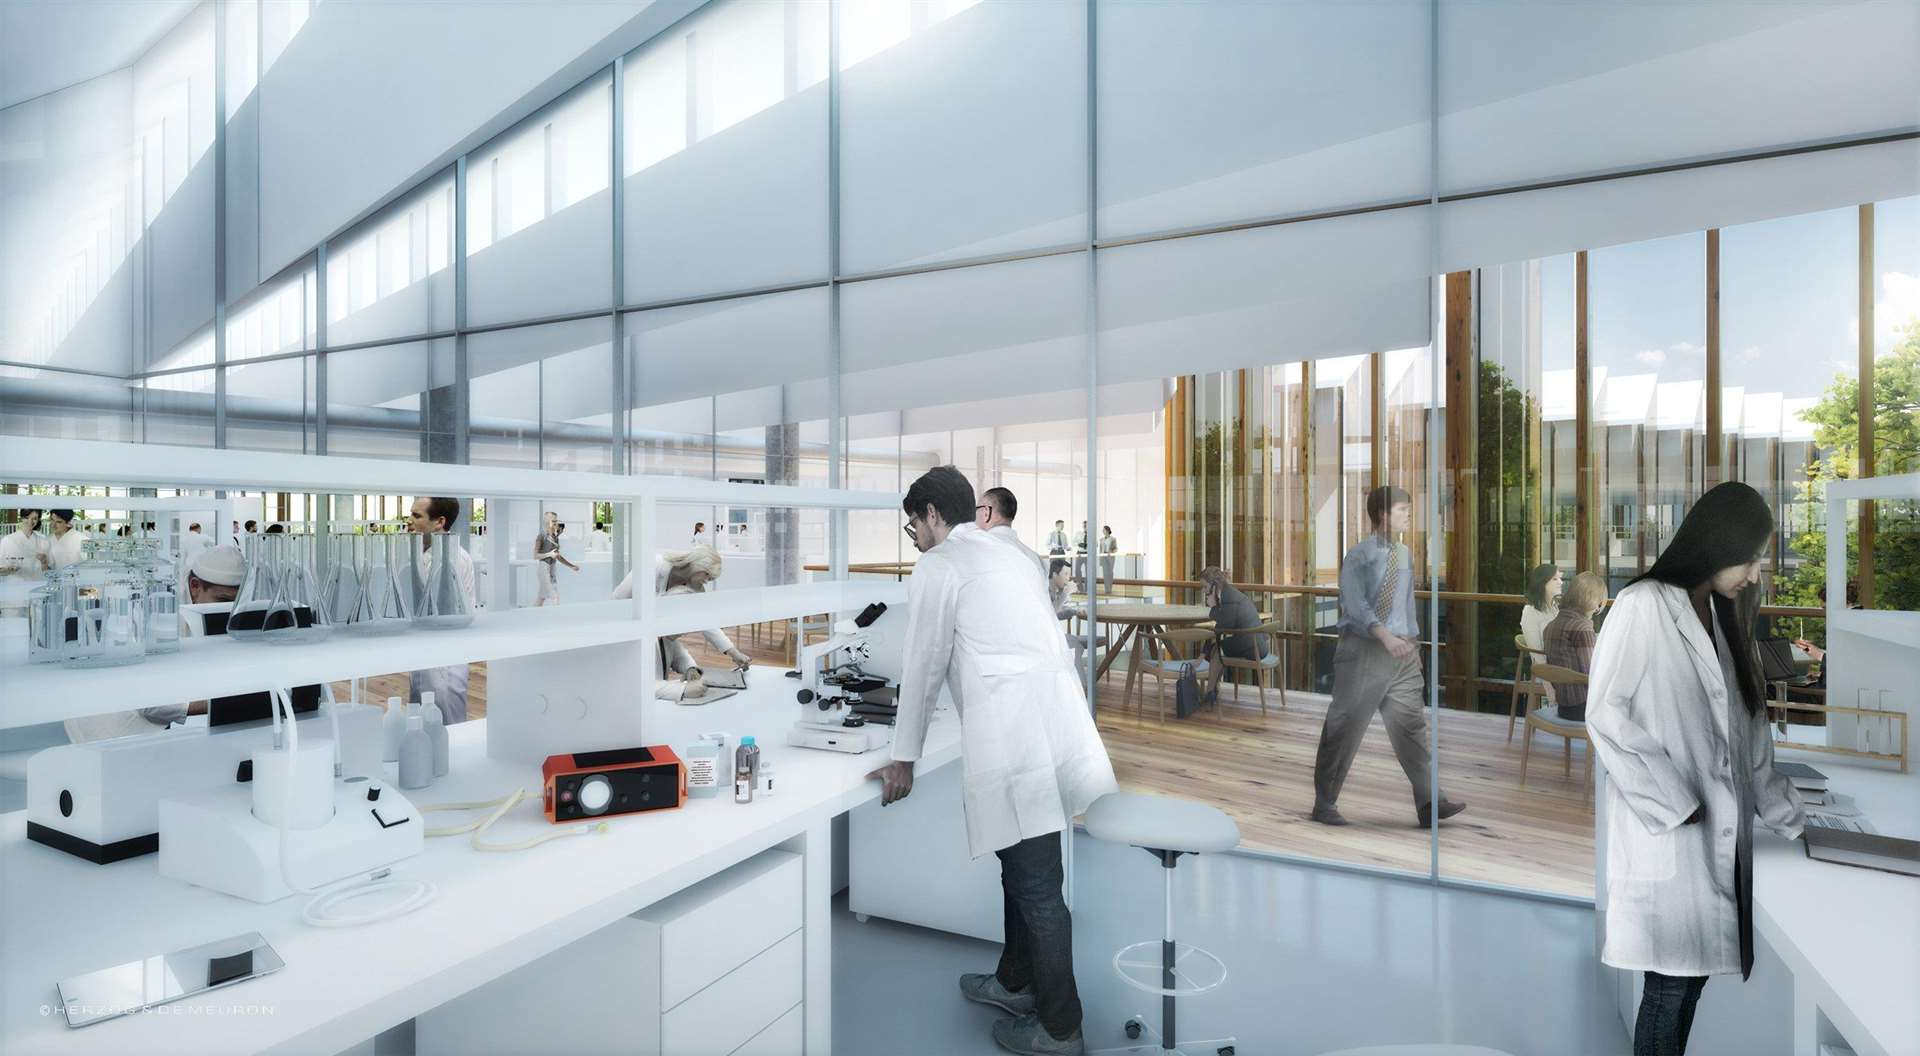 Concept drawing of second floor lab at AstraZeneca in Cambridge. (7181969)